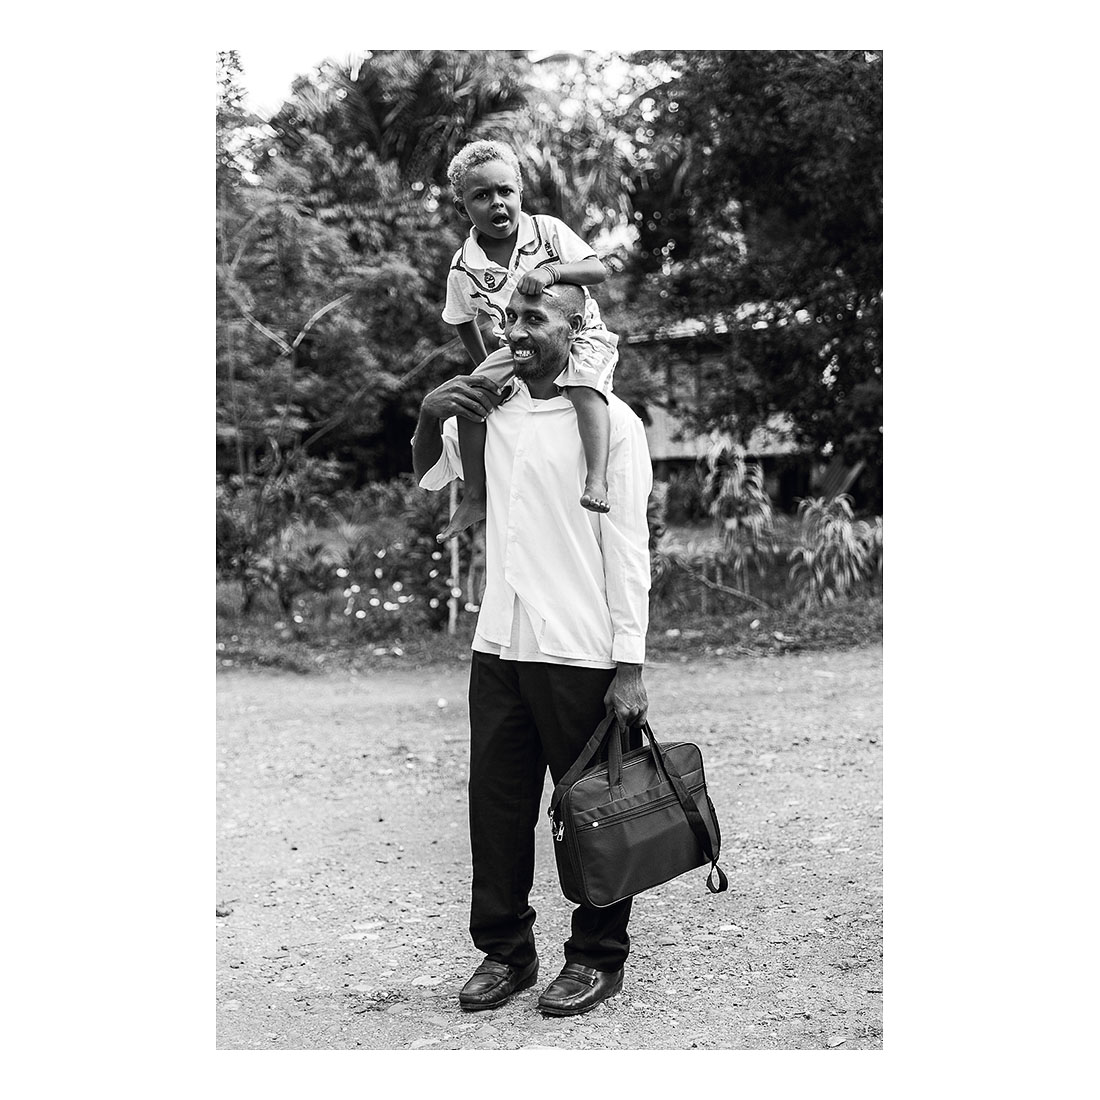 #22 Namo Lae Lae, Malaita, Solomon Islands  (2016).  Archival pigment print on Ilford paper. Exhibition print 36cm x 24cm. Different sizes available.